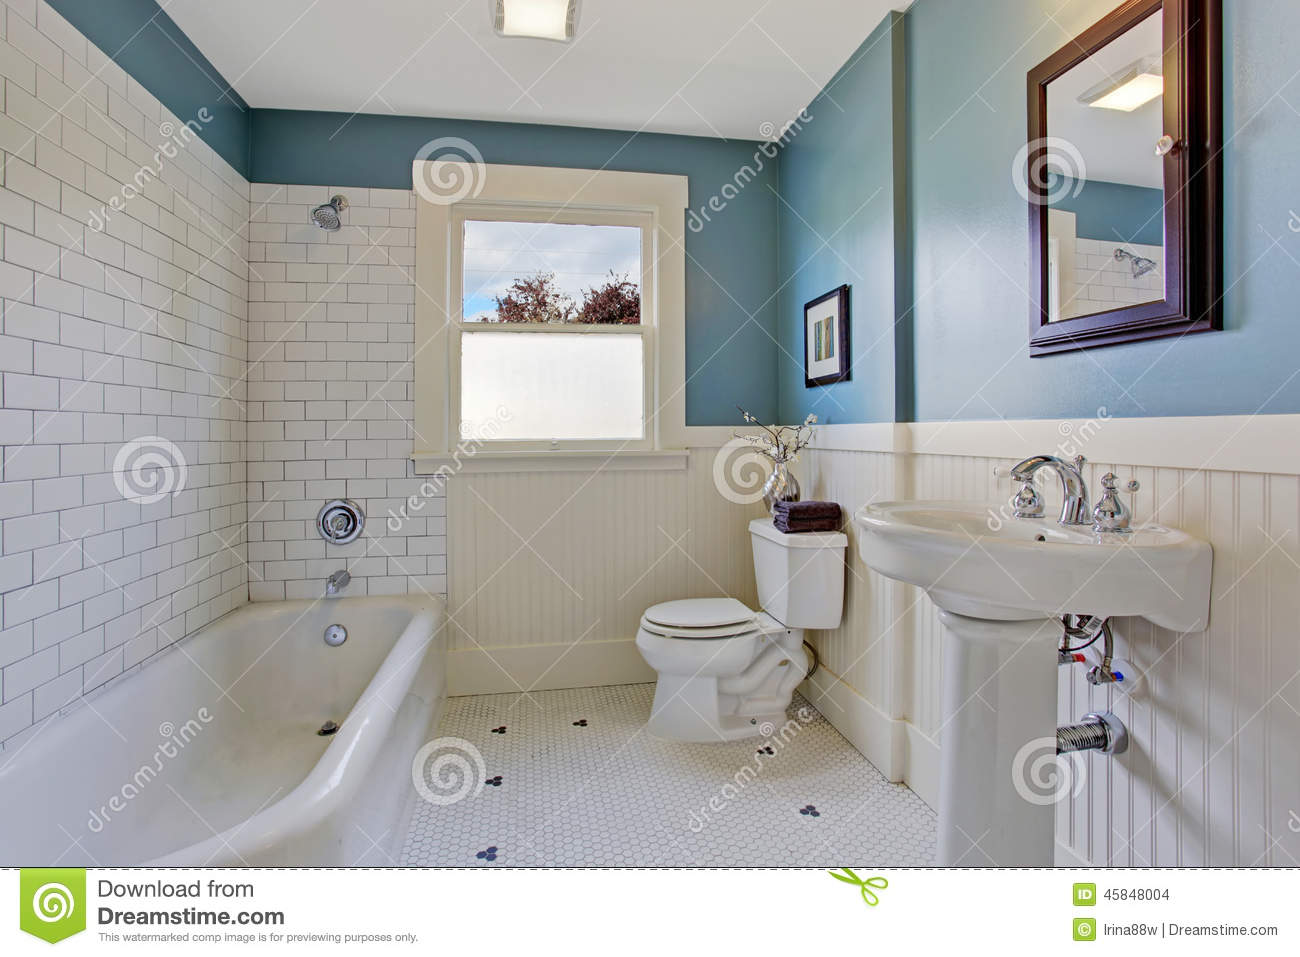 White And Blue Bathroom Interior Stock Photo Image 45848004